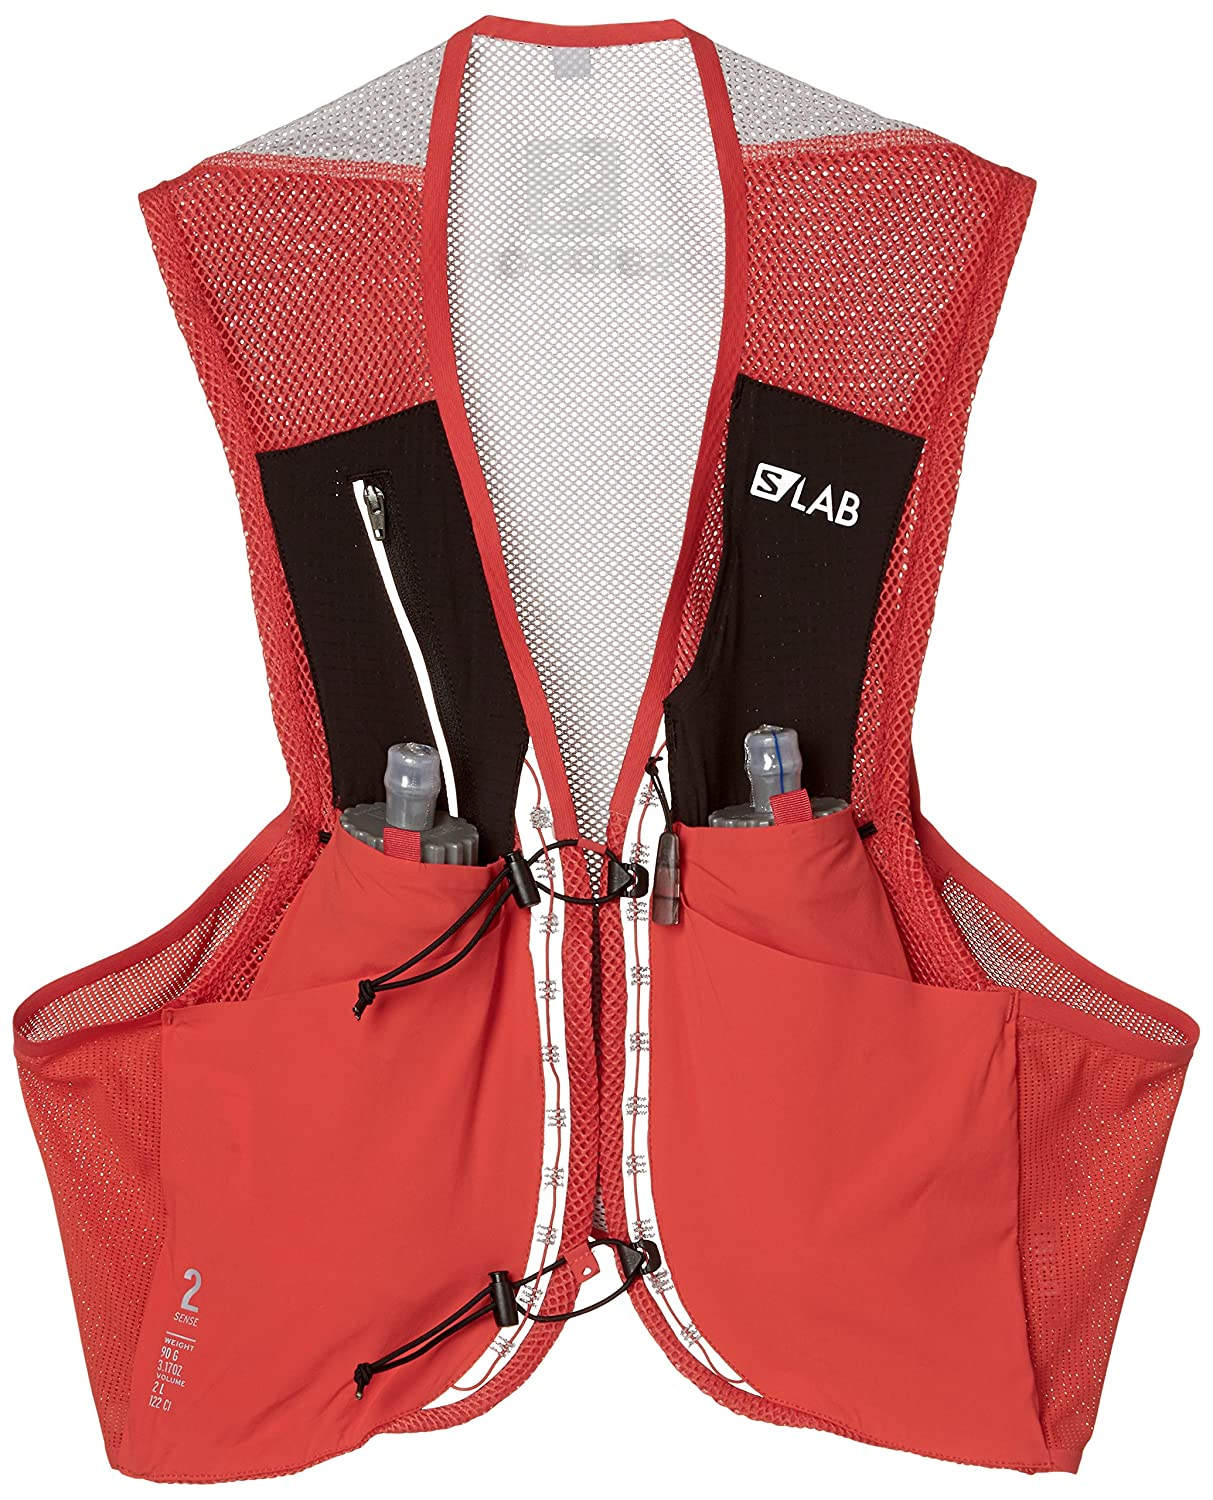 1ddb3dc9 Salomon Unisex S/Lab Sense 2 Set Hydration Vest, Racing Red, X-Small ...